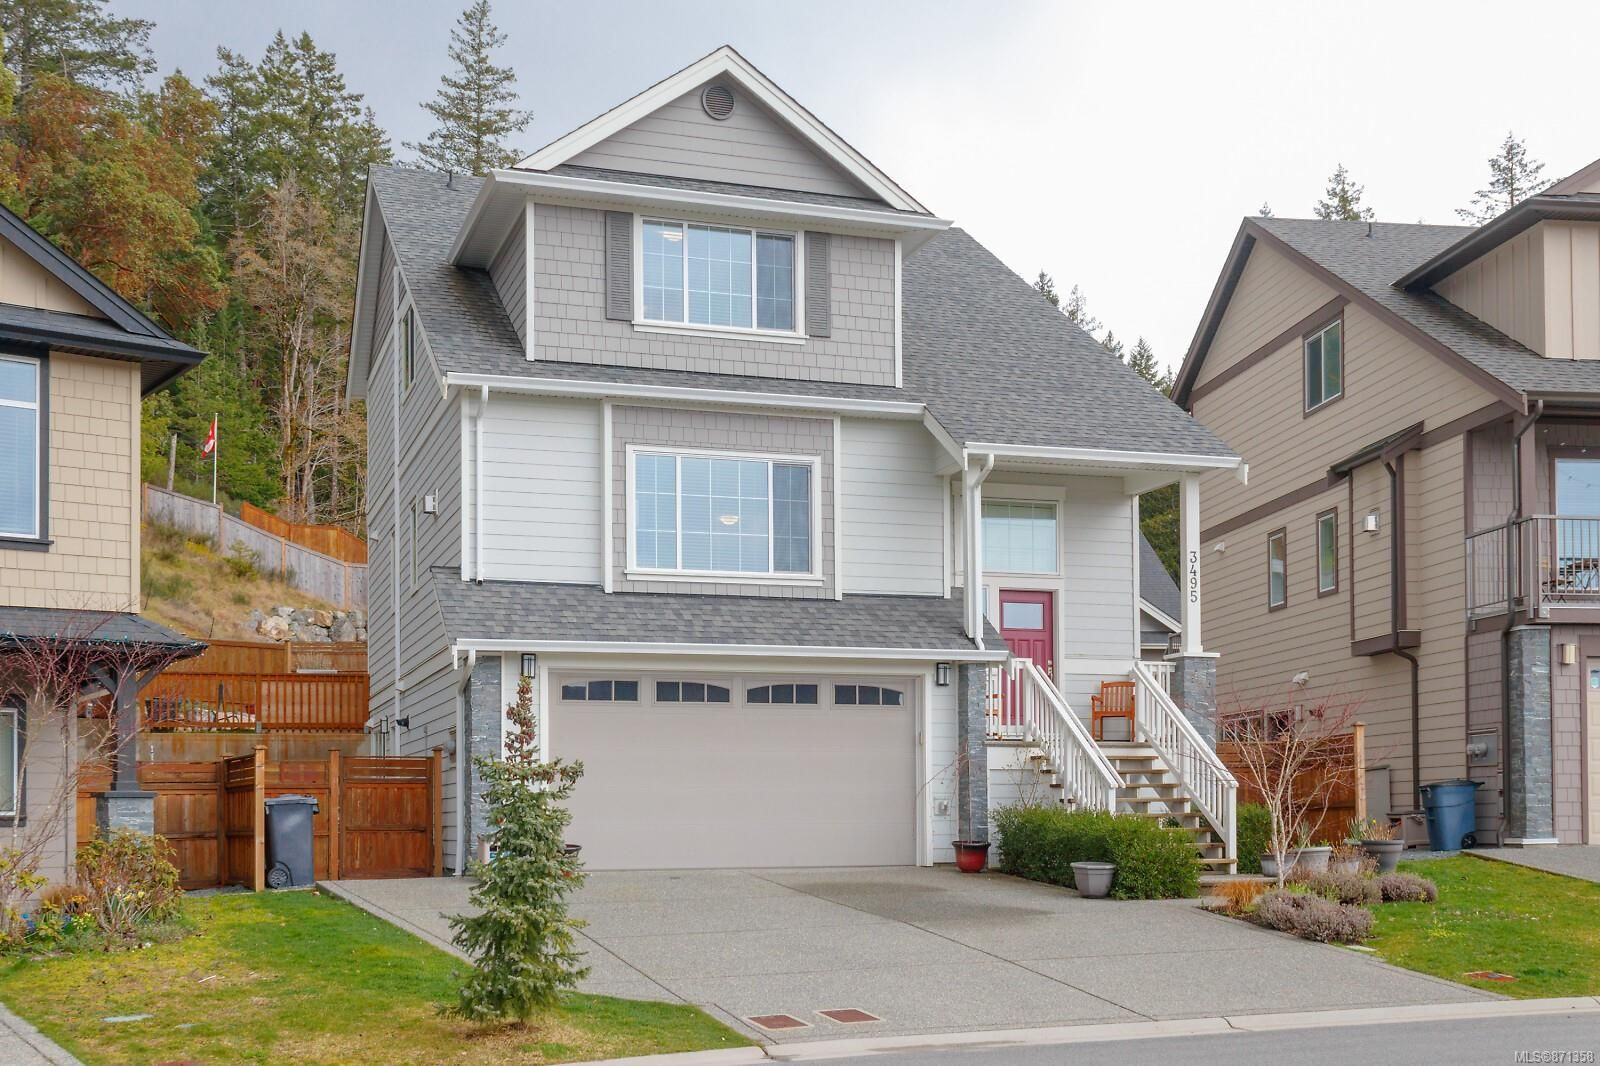 Main Photo: 3495 Ambrosia Cres in : La Happy Valley House for sale (Langford)  : MLS®# 871358